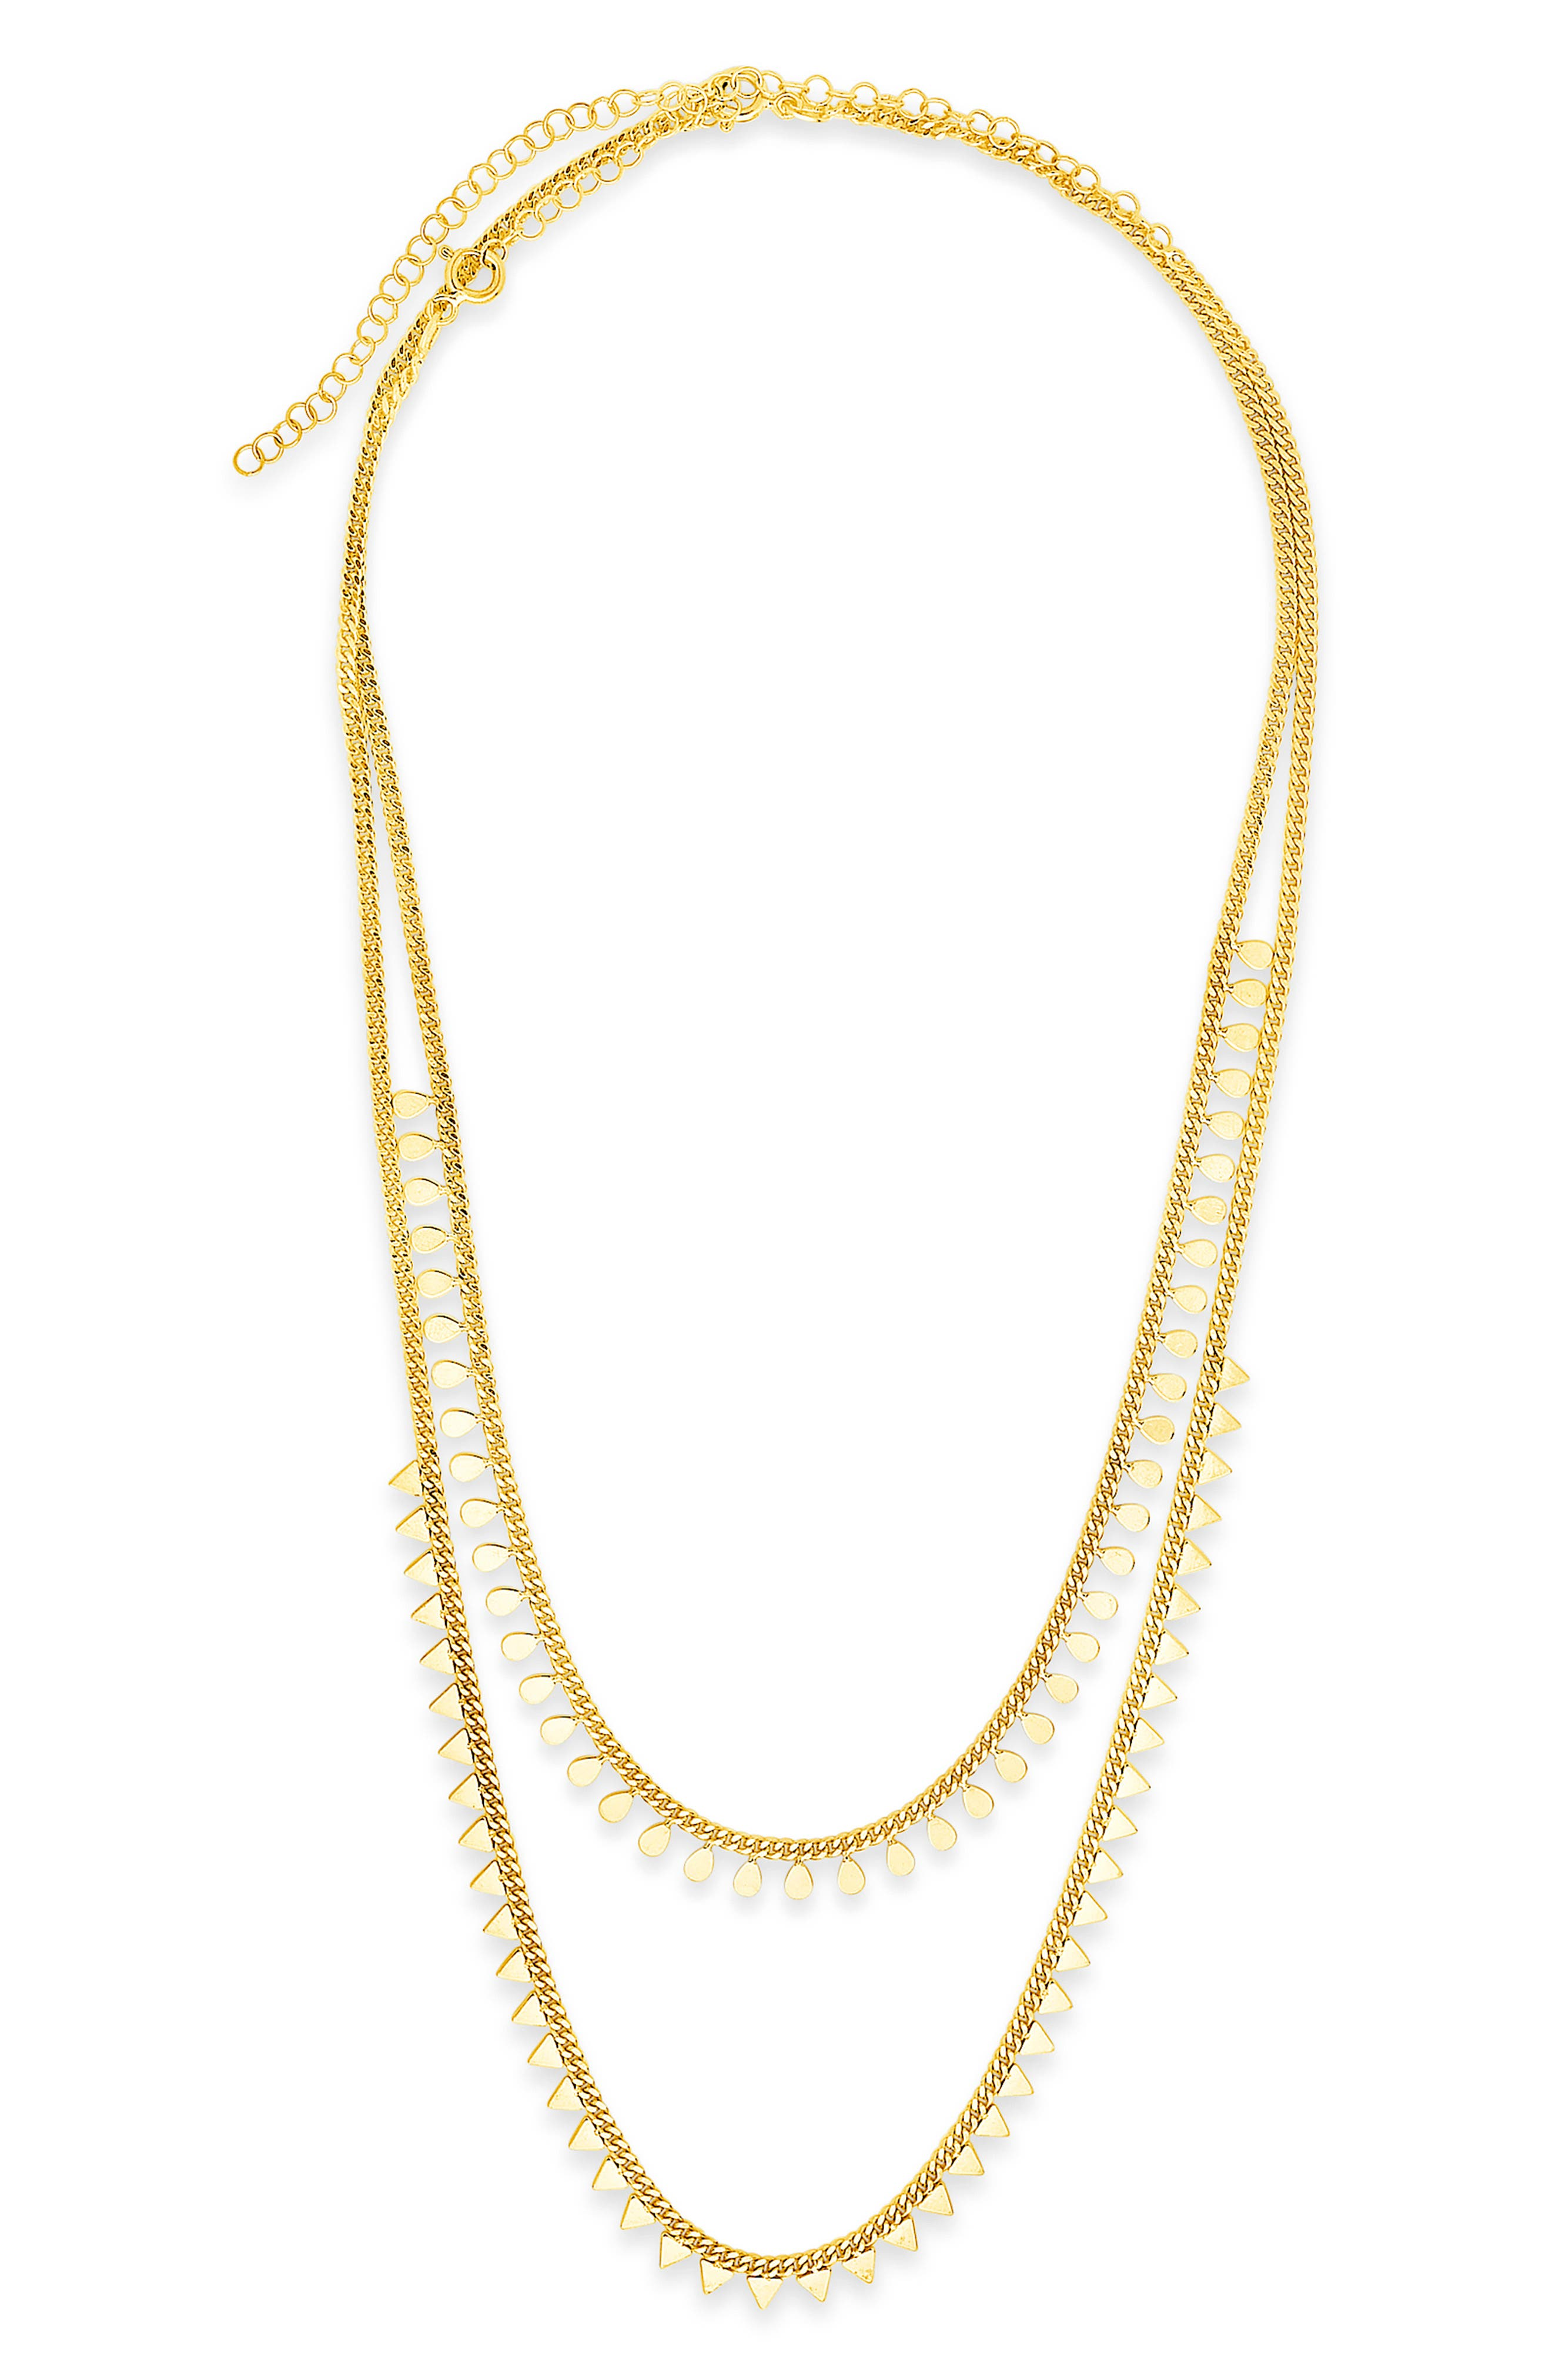 Sculptural geometric shapes add contemporary appeal to a layered necklace styled with two polished curb-link chains. Style Name: Sterling Forever Layered Geometric Charm Necklace. Style Number: 6173943. Available in stores.